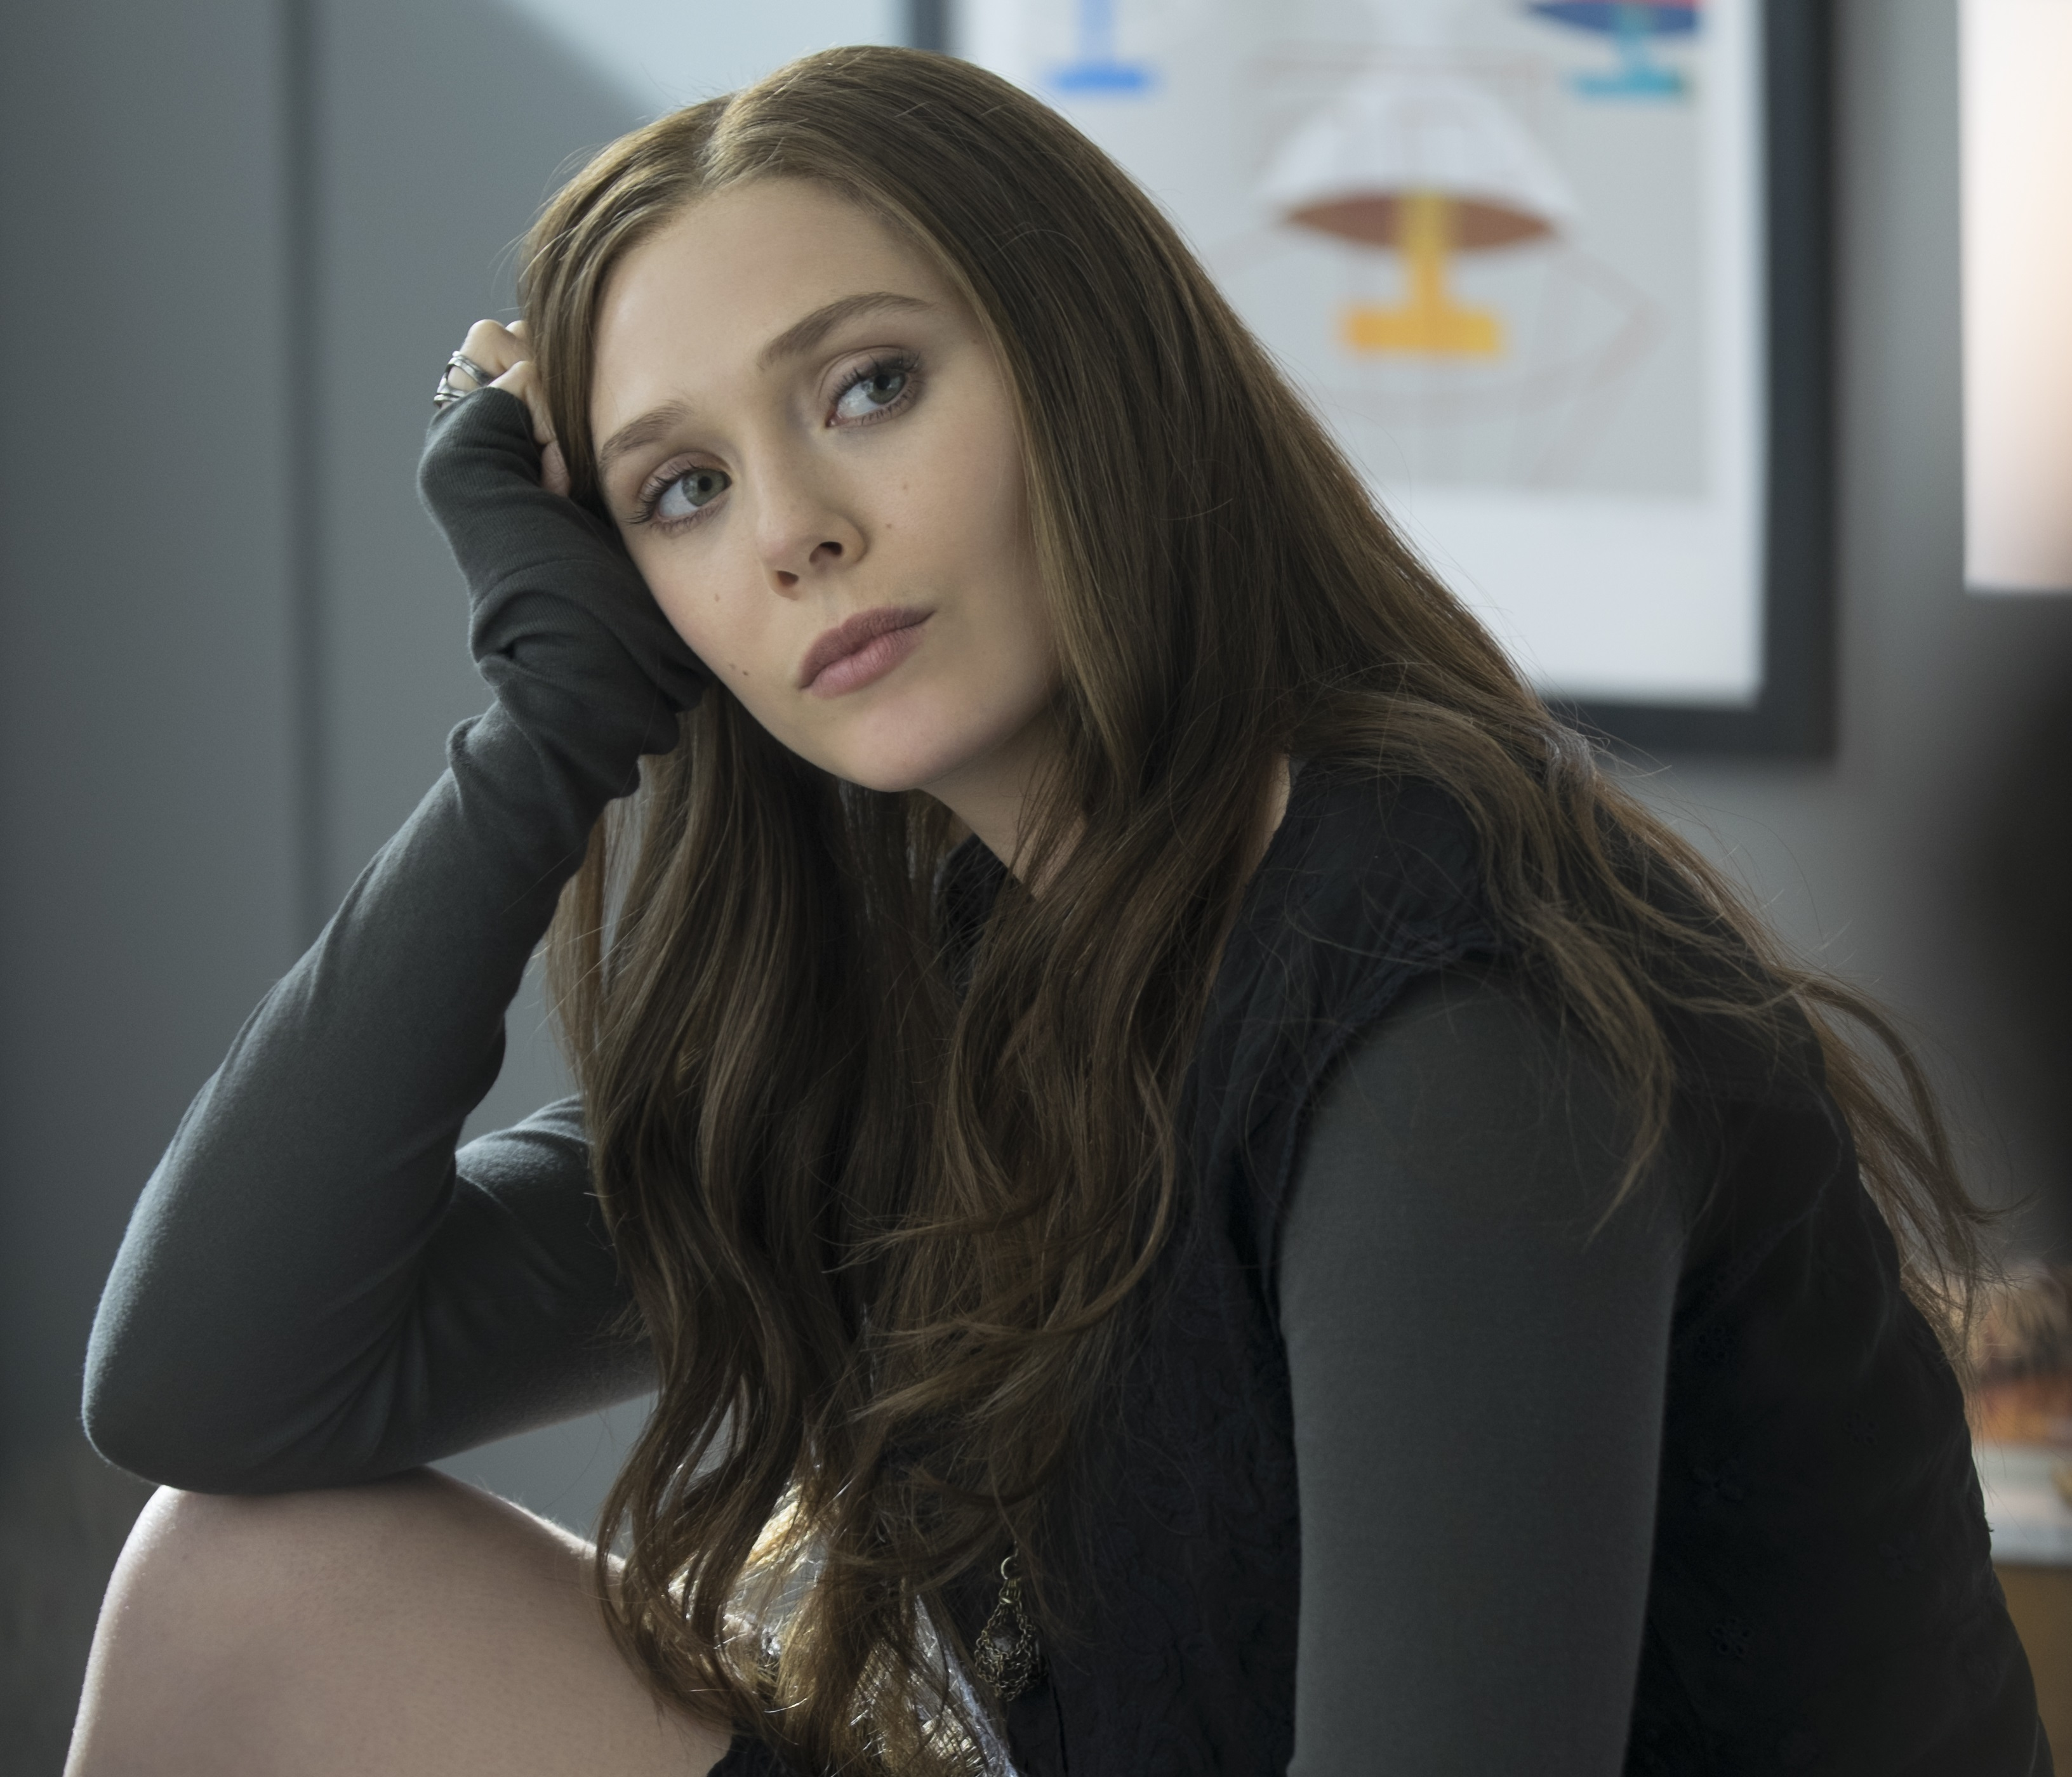 Elizabeth Olsen As Scarlet Witch Hd Movies 4k Wallpapers Images